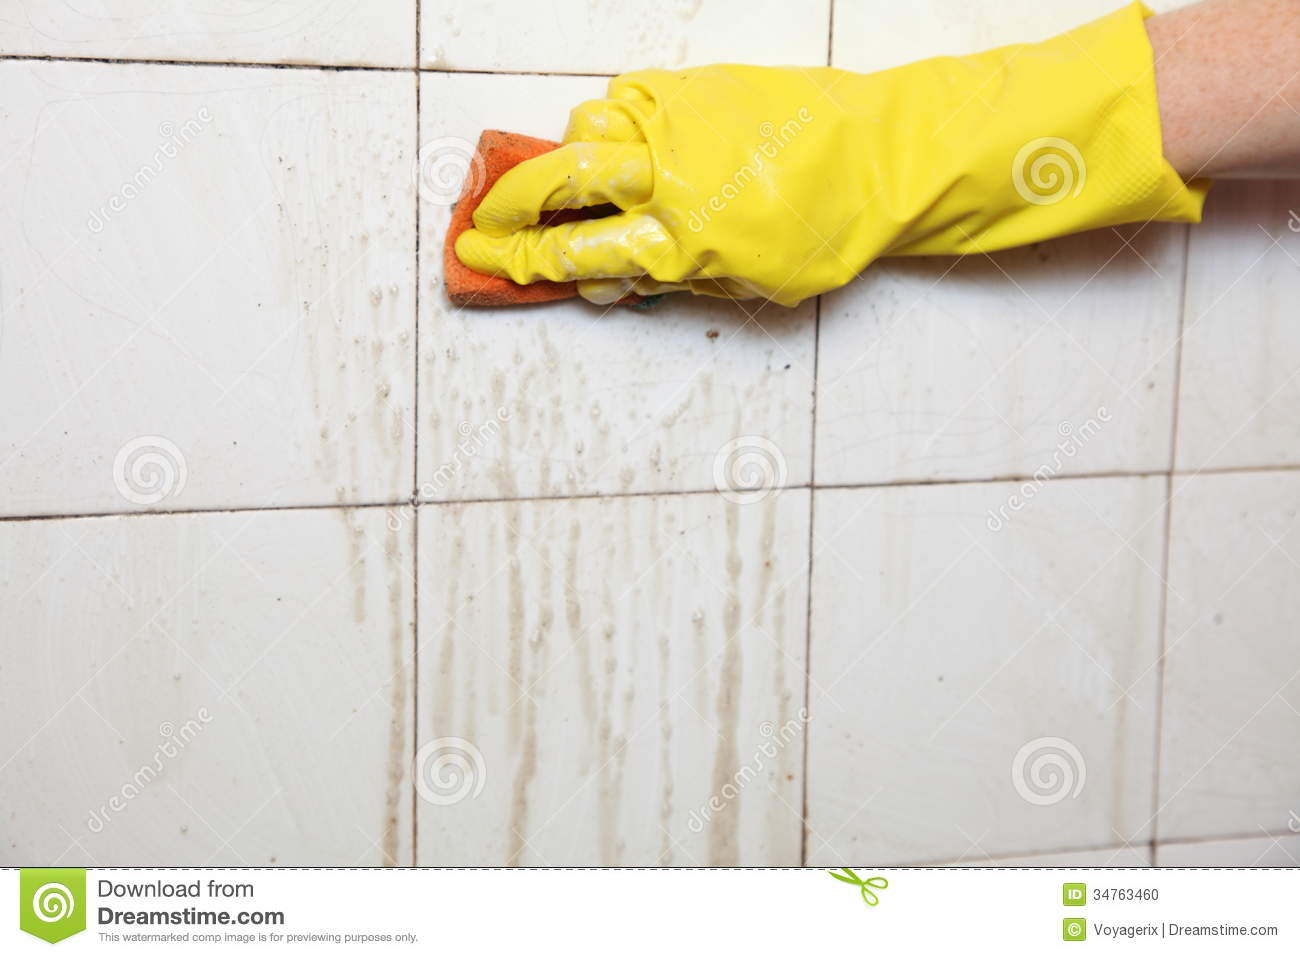 Cleaning Of Dirty Old Tiles In A Bathroom Stock Photo Image of